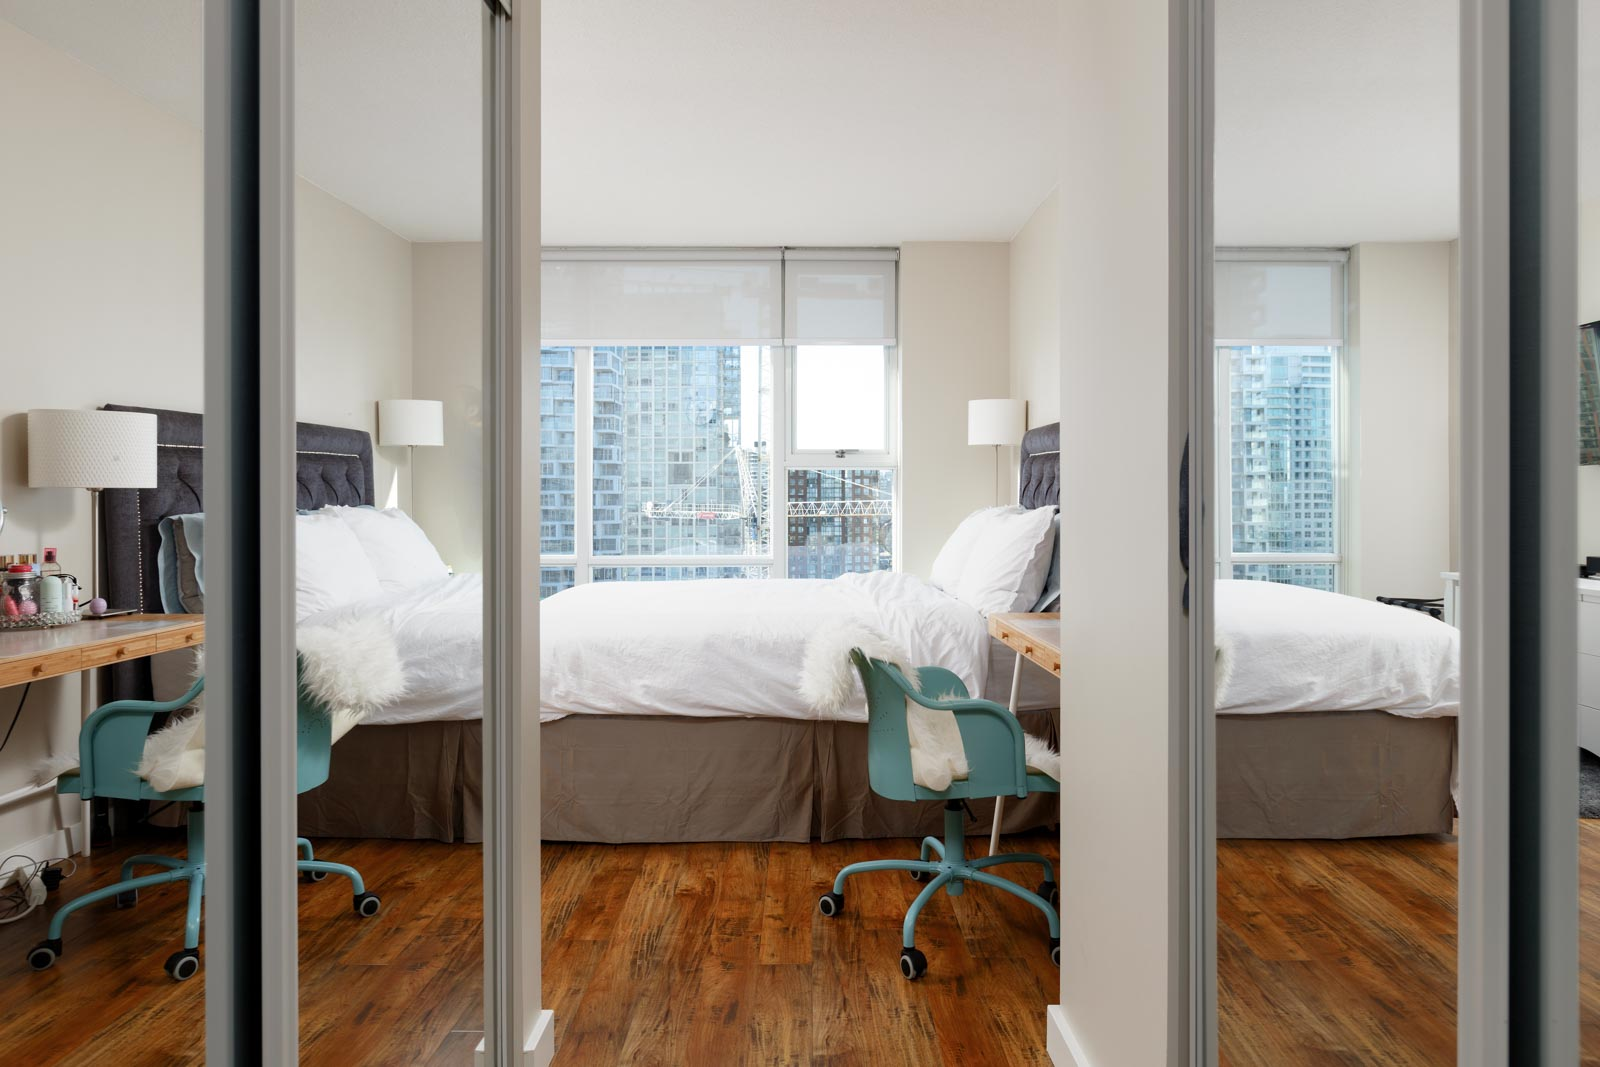 Bedroom with view in Yaletown Vancouver rental condo.